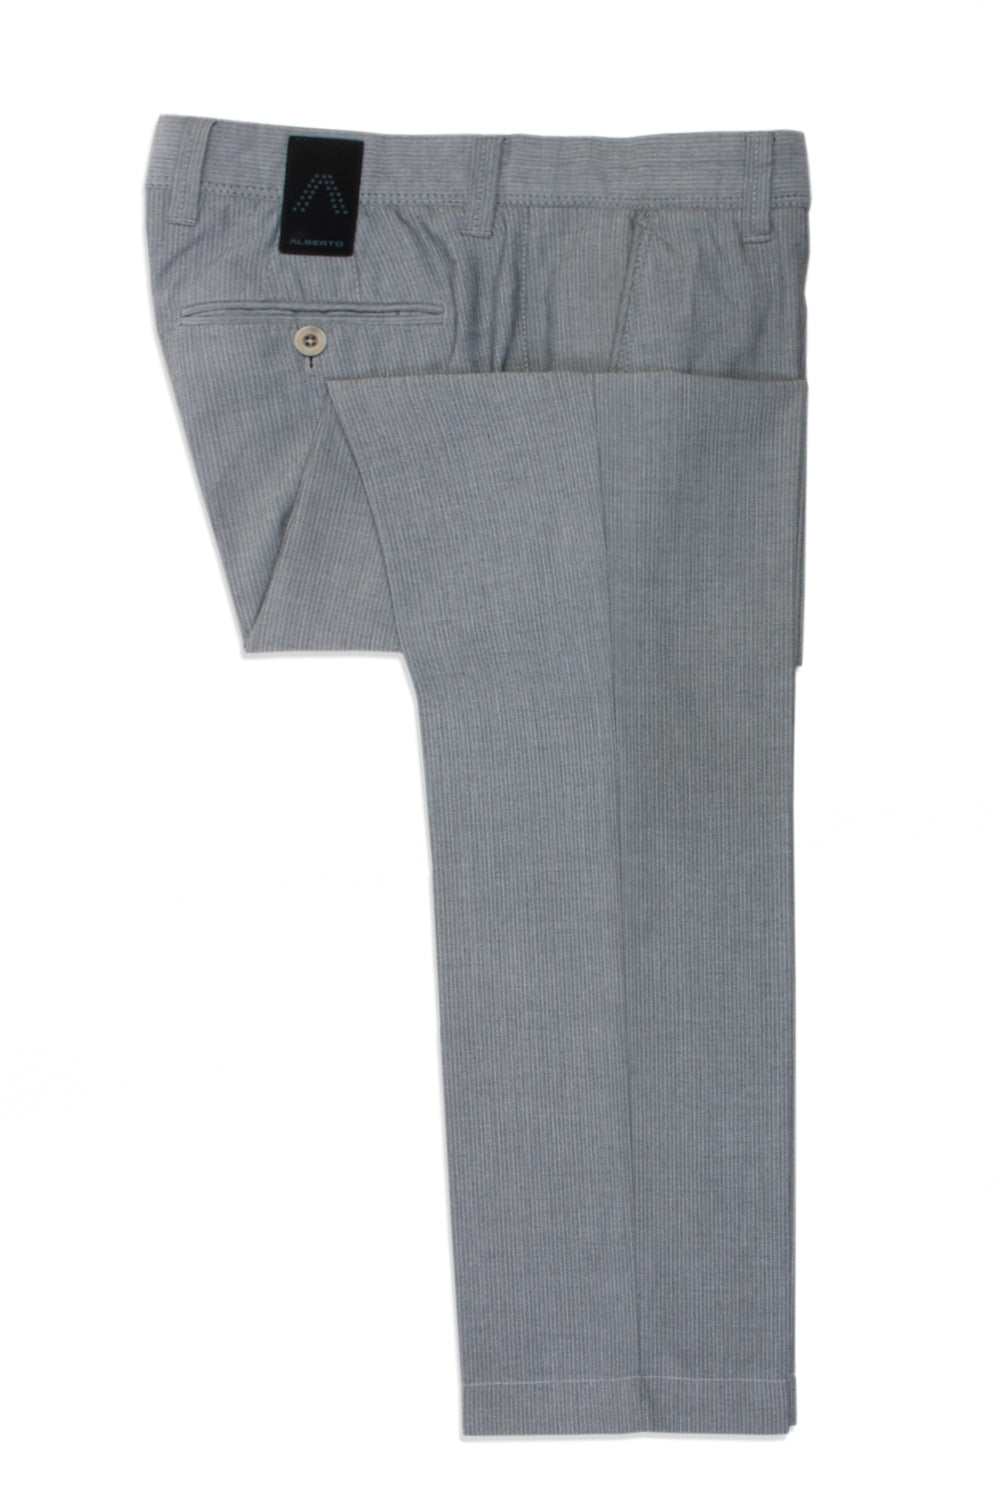 Alberto Grey Stripe Lou Ceramica Modern Fit Pants for Luxmrkt.com Menswear Consignment Edmonton